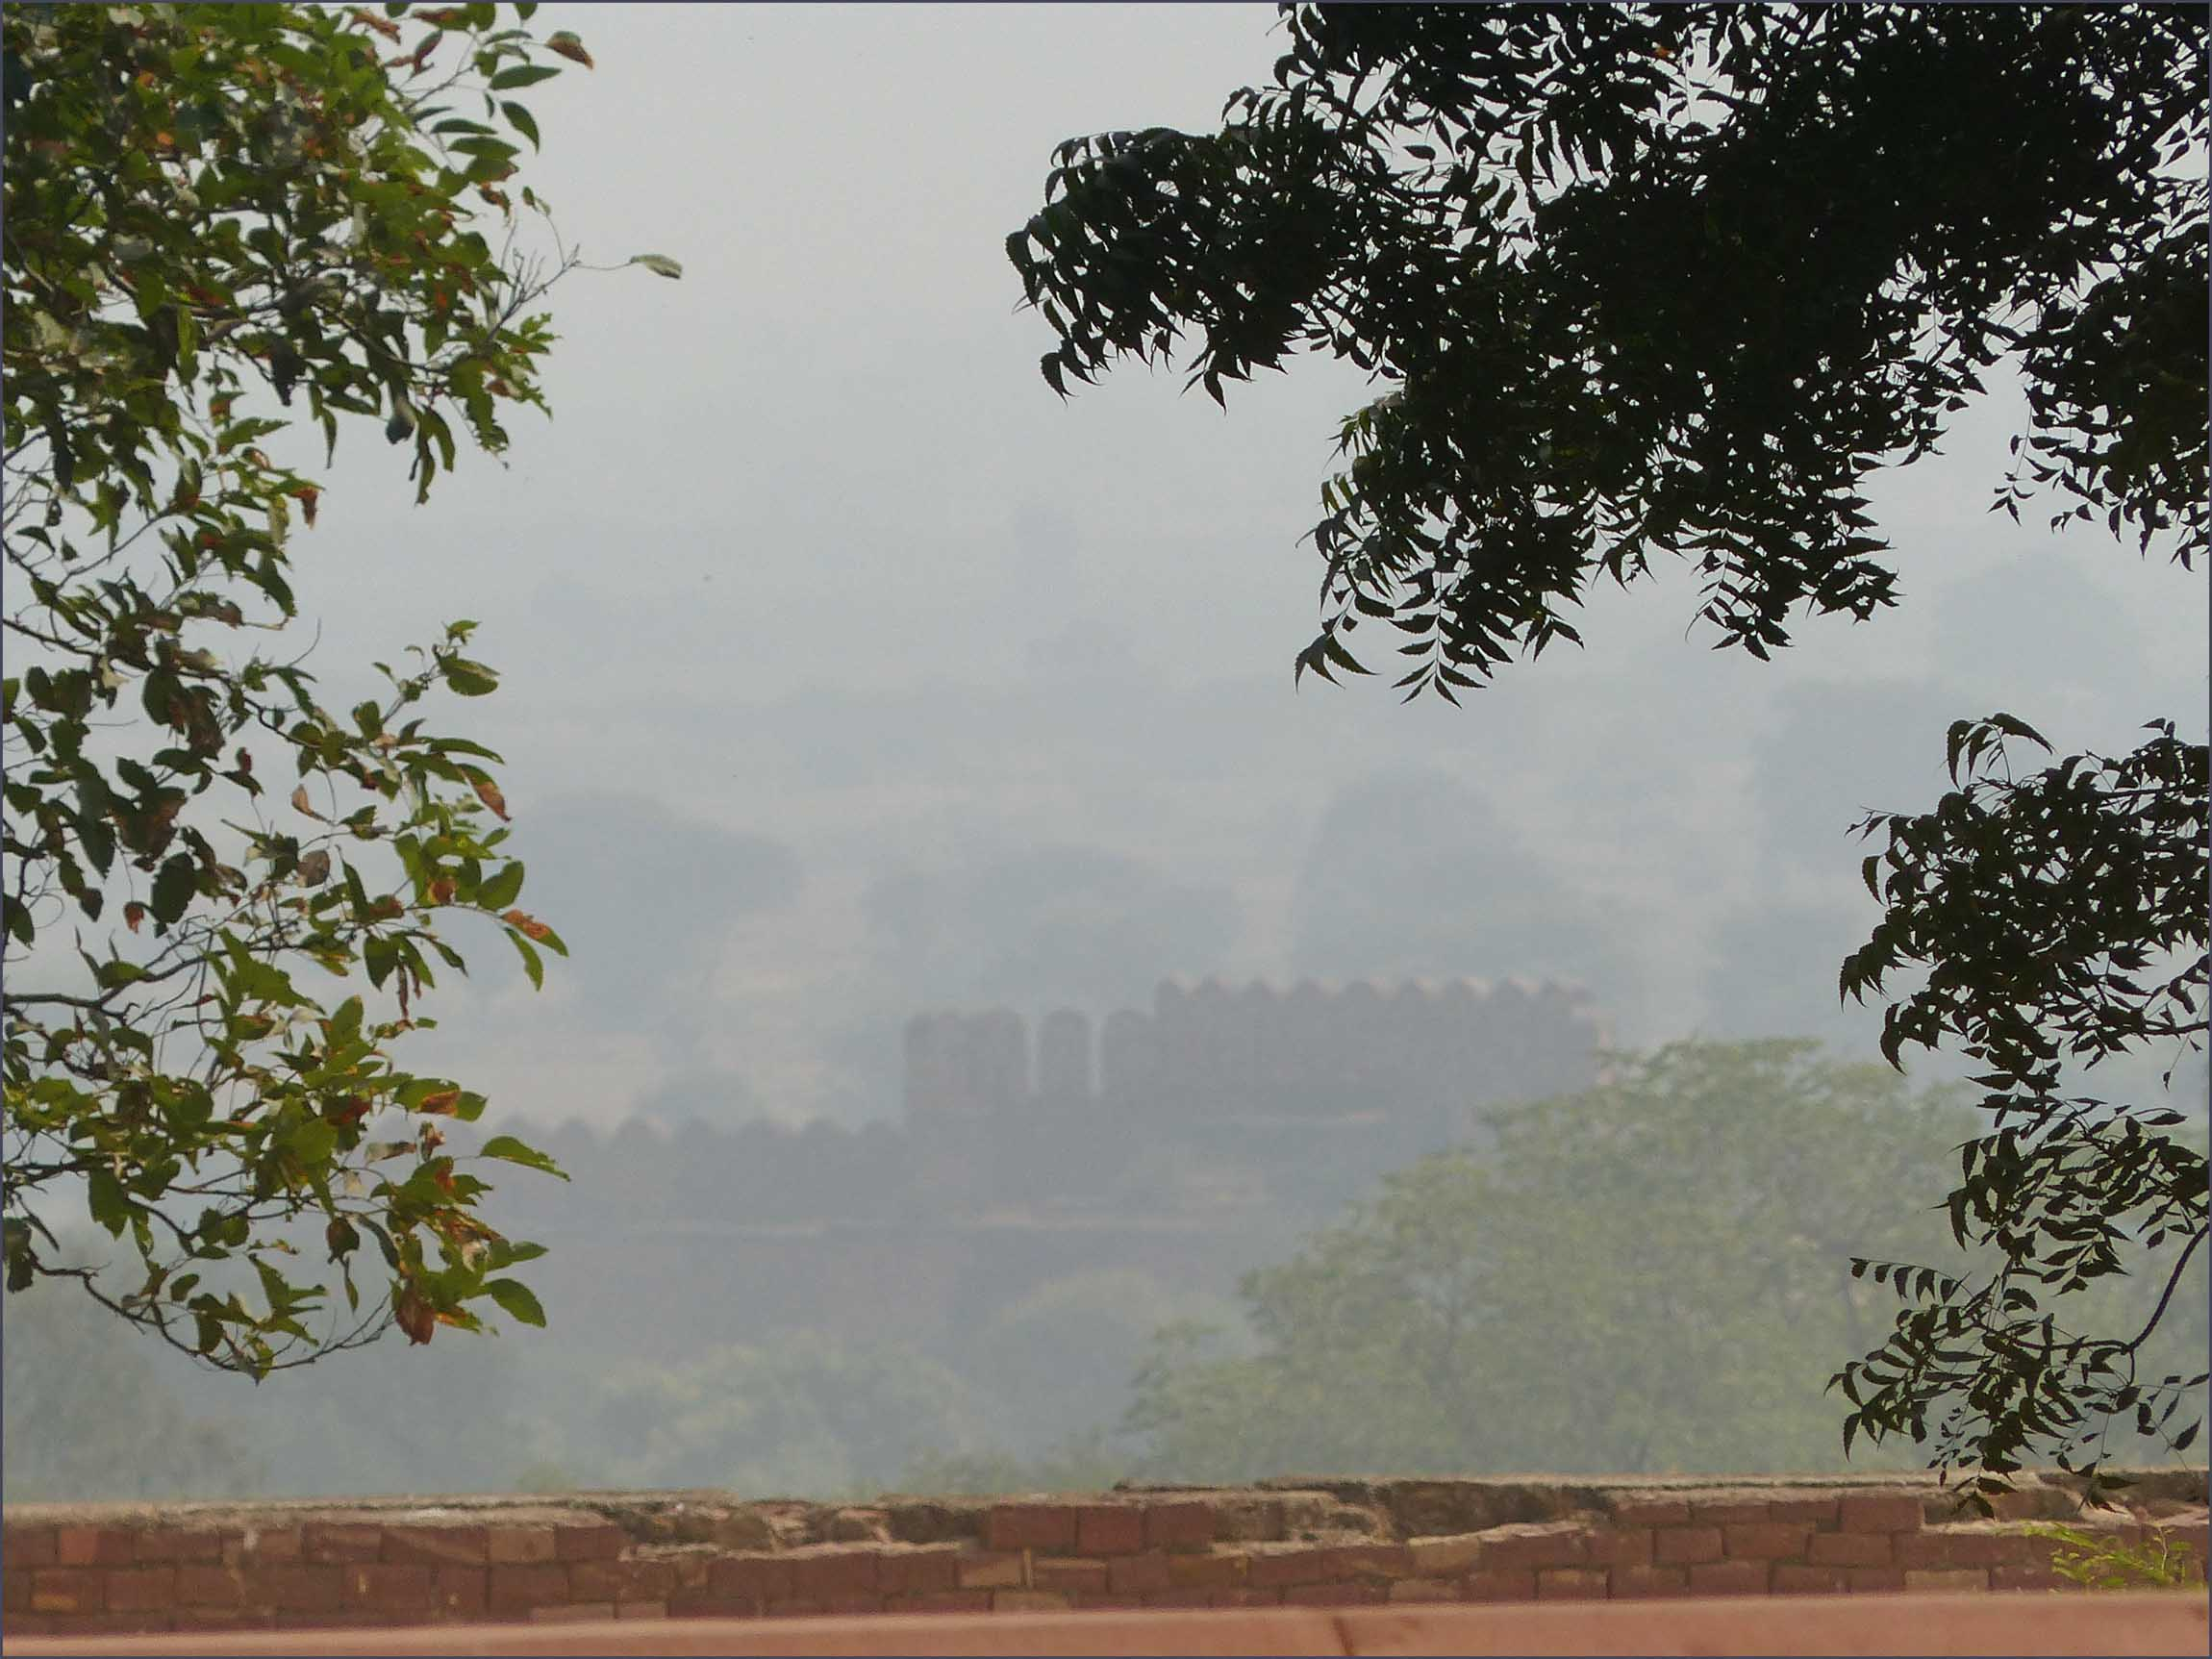 Misty view of ruins